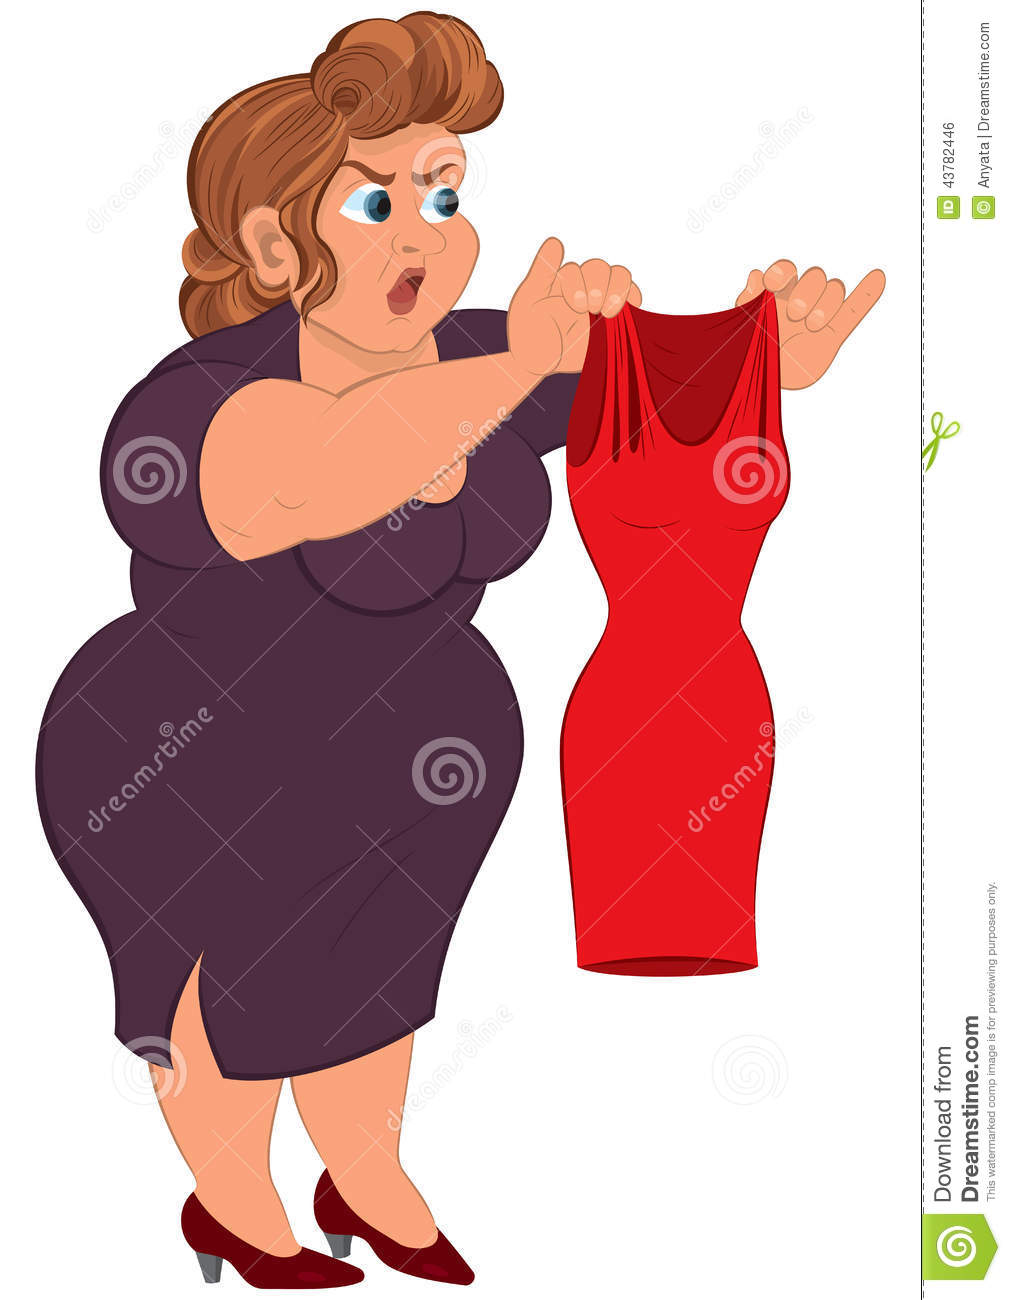 Cartoon Fat Woman In Purple Dress Holding Small Red Dress -4780